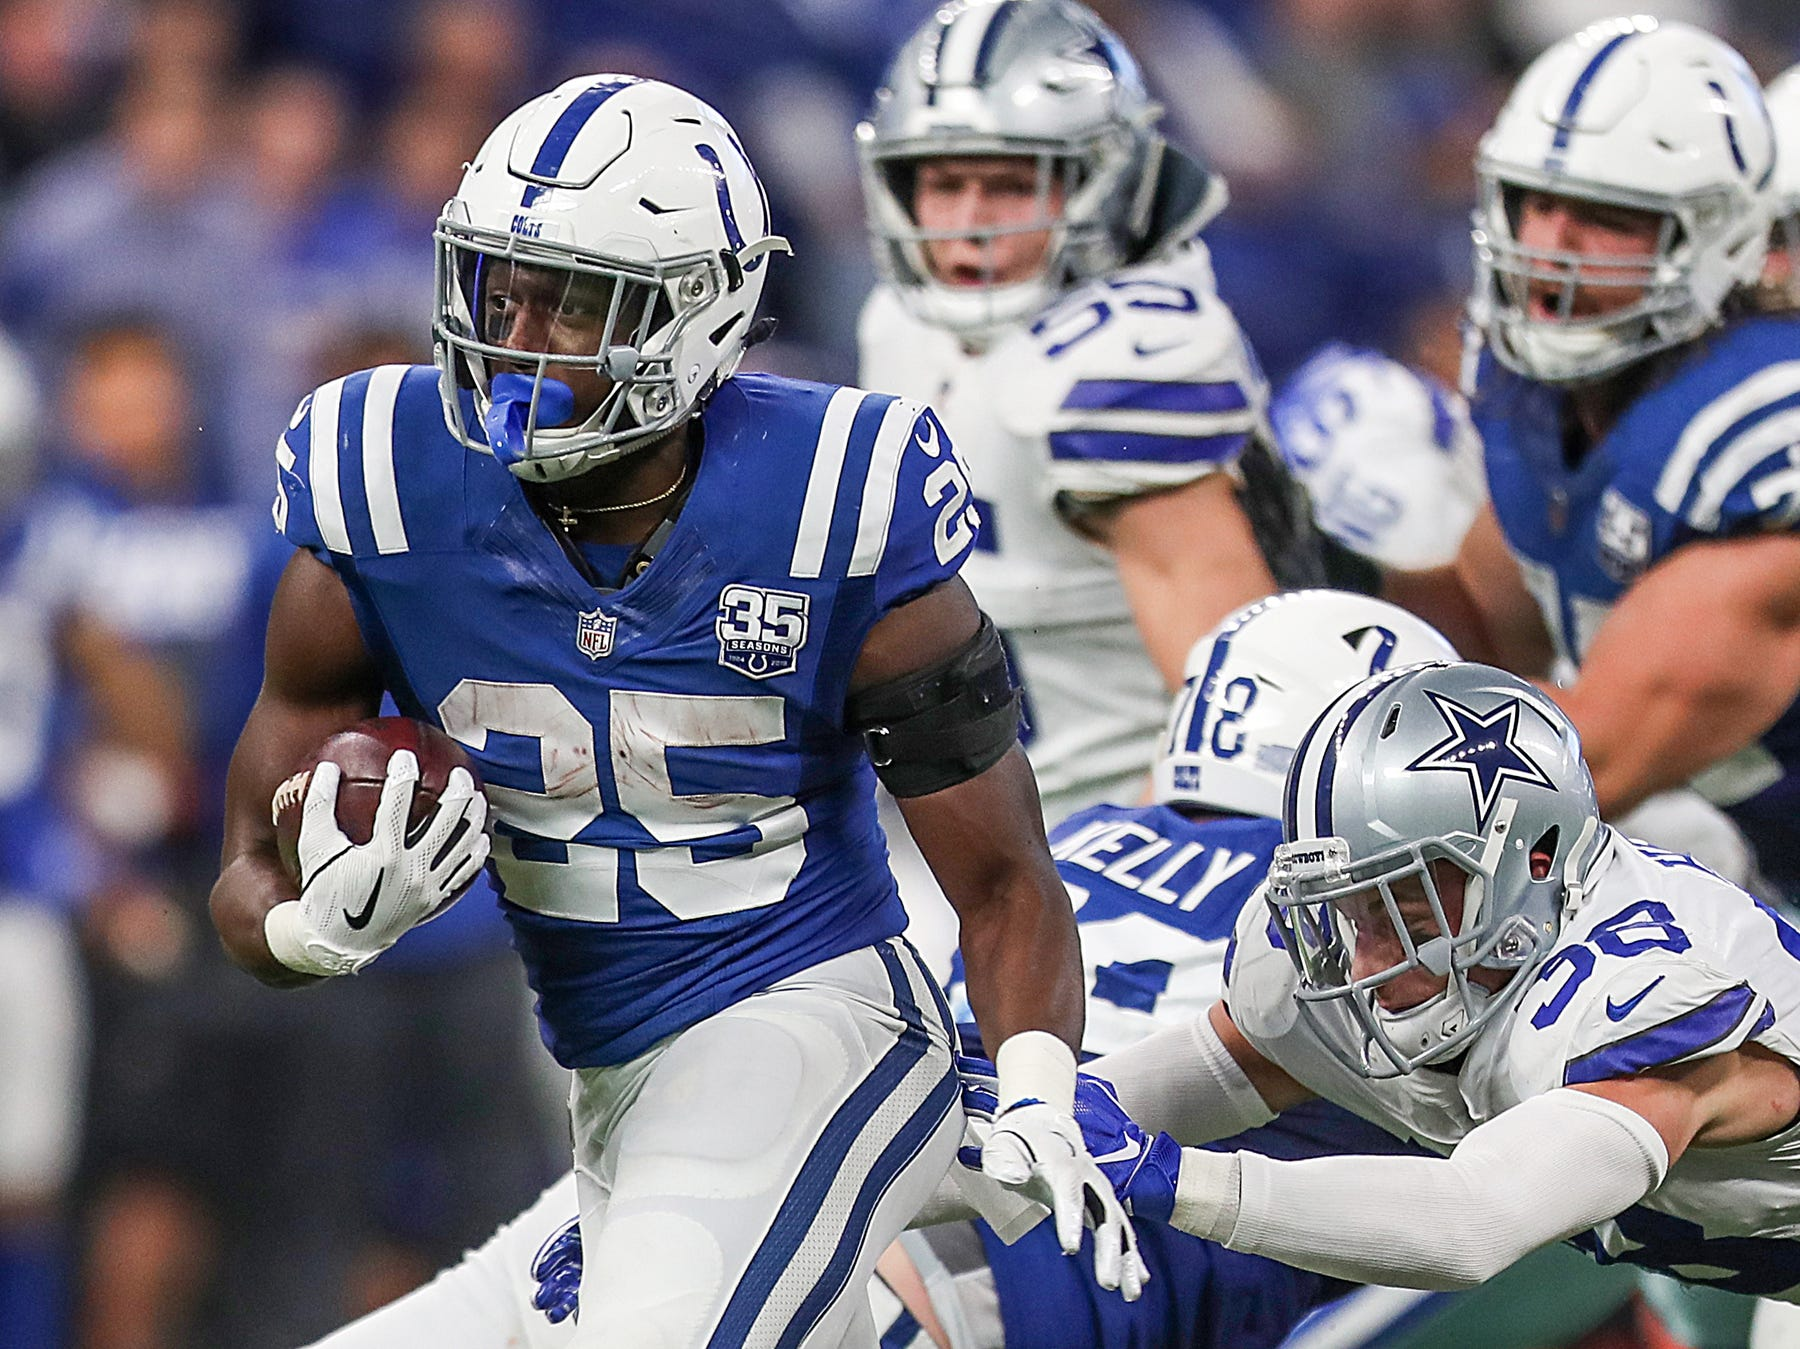 Indianapolis Colts running back Marlon Mack (25) carries the ball in the second half of the game at Lucas Oil Stadium in Indianapolis, Sunday, Dec. 16, 2018.